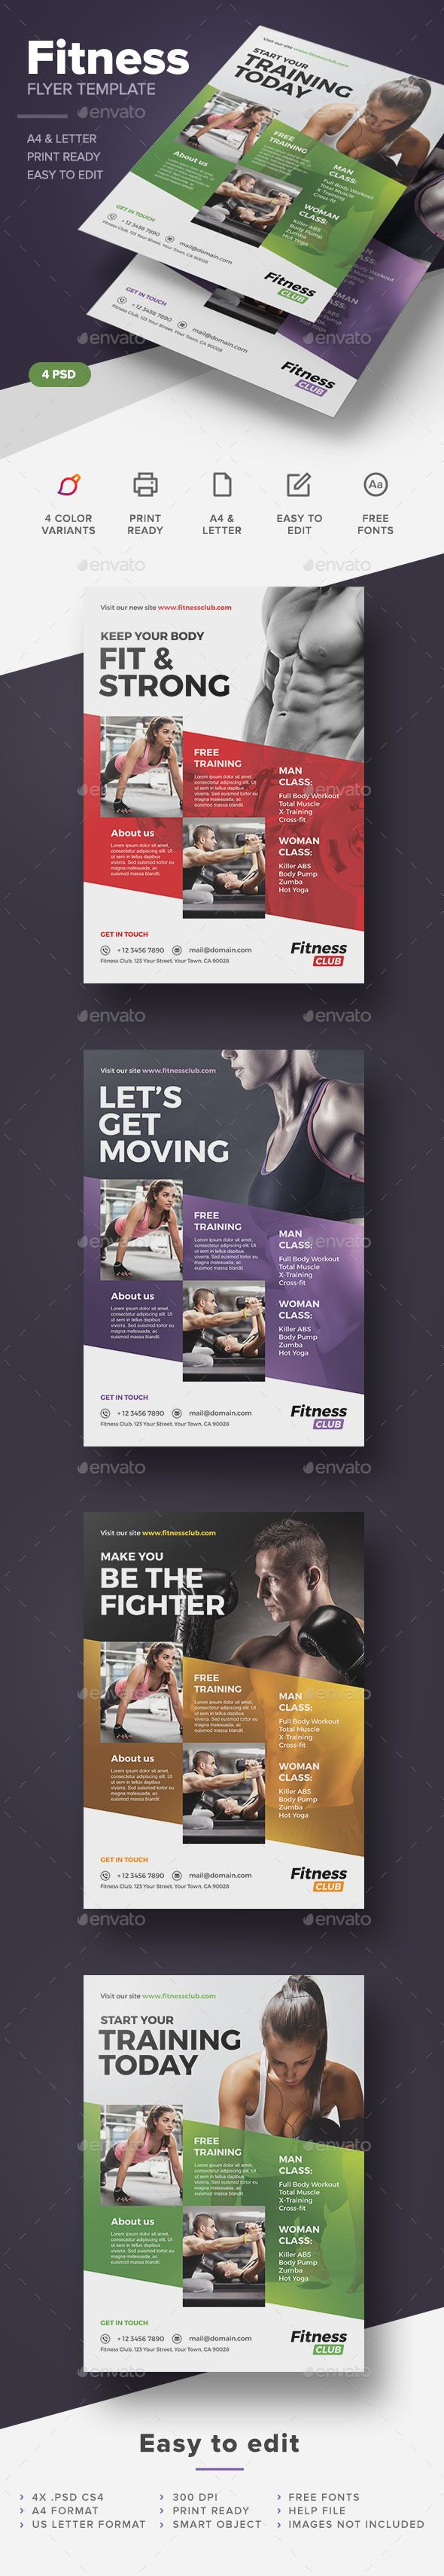 Fitness / Gym Flyer Template #design Download: http://graphicriver.net/item/fitness-gym-flyer-template/12464683?ref=ksioks